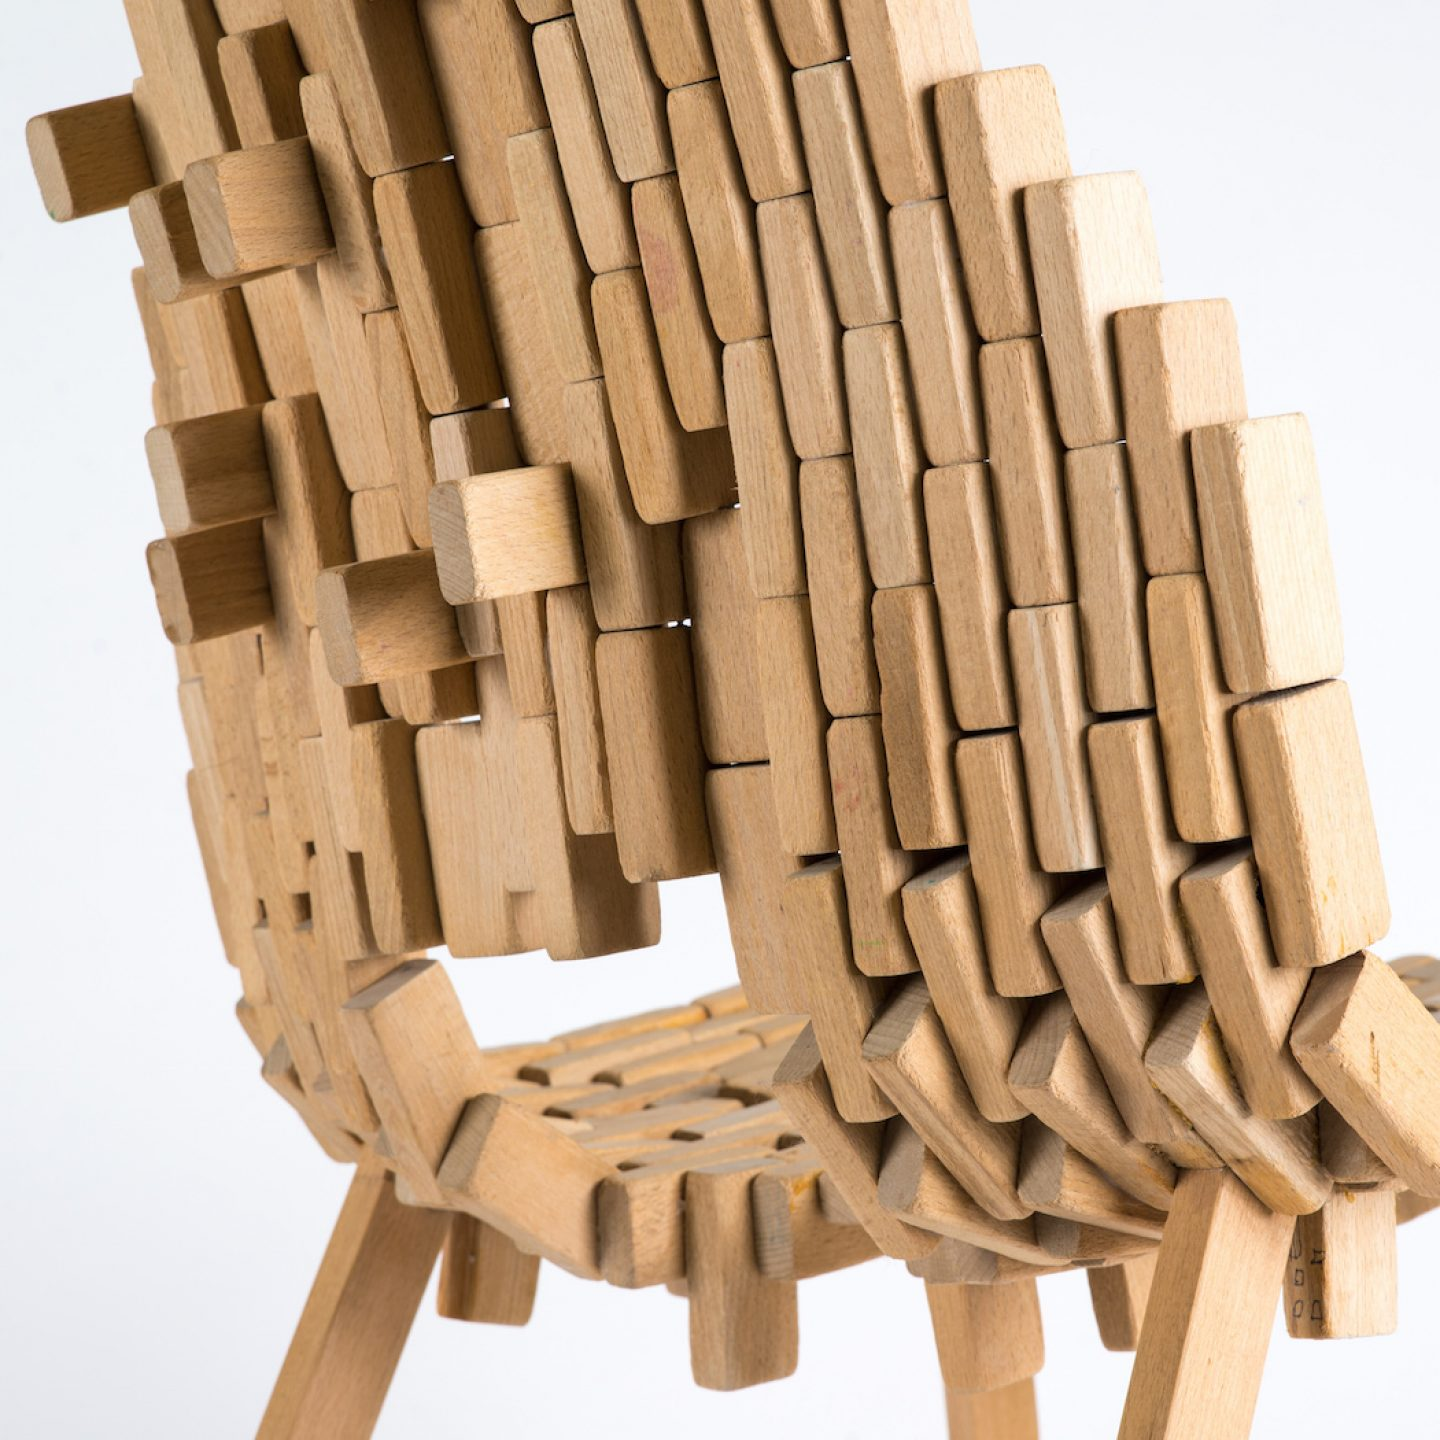 Bricks-chair-06